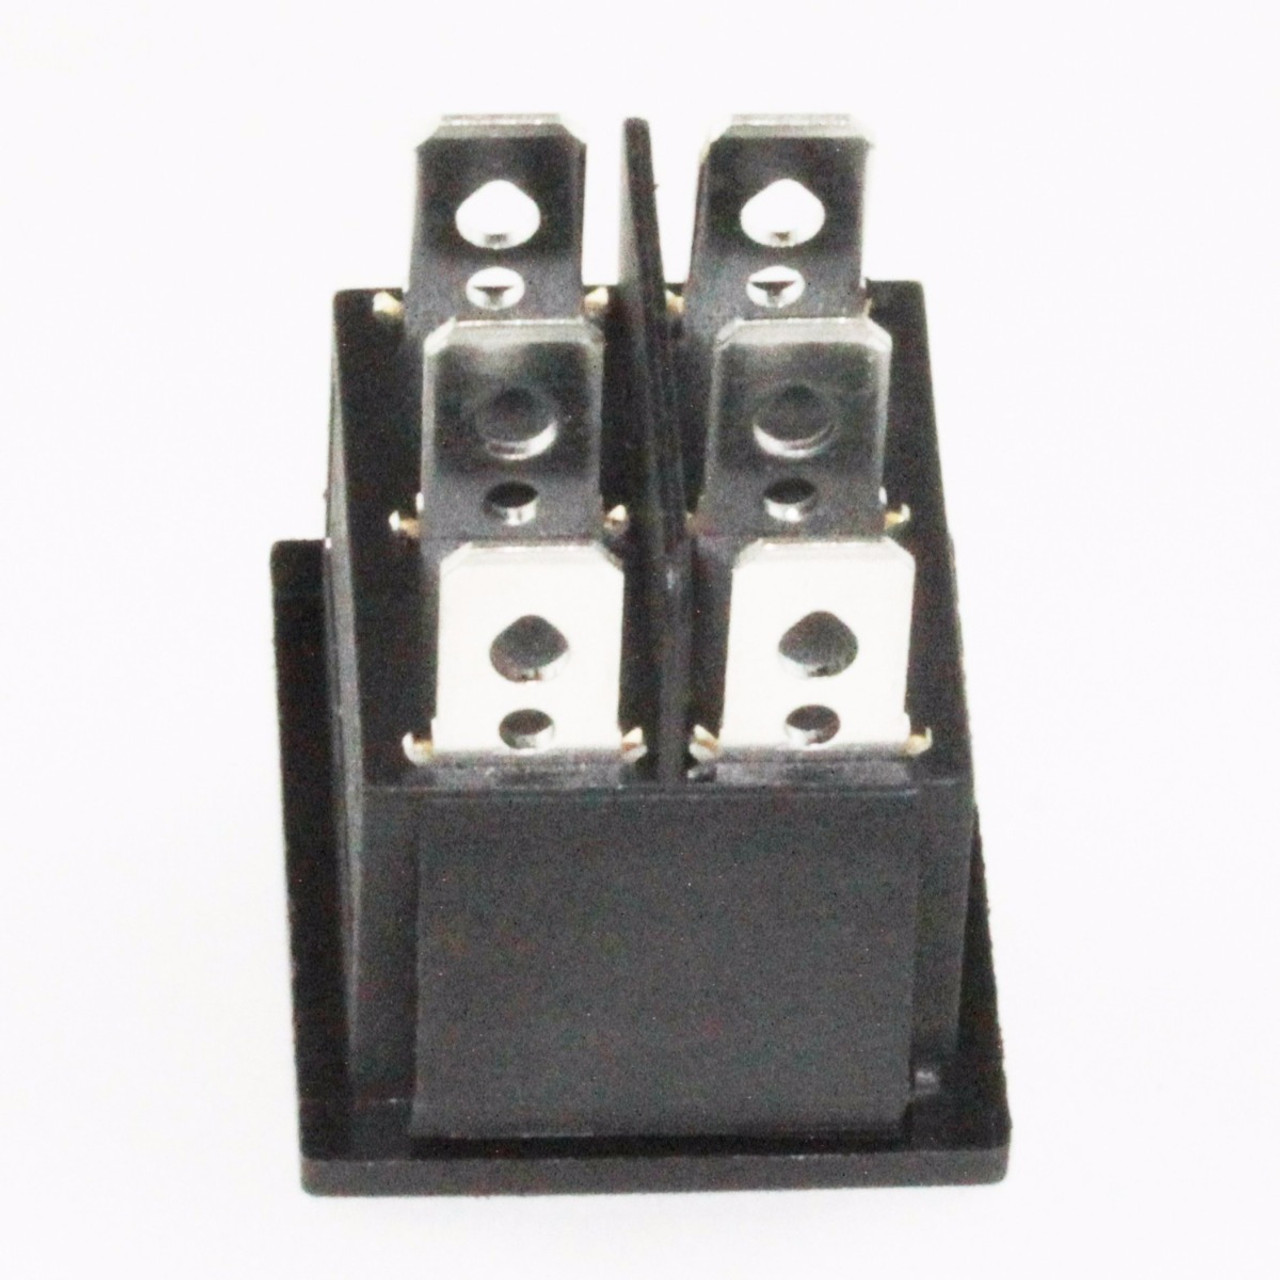 6 Pin Rectangle Rocker Latching ON/OFF Boat Switch 25mm x 31mm